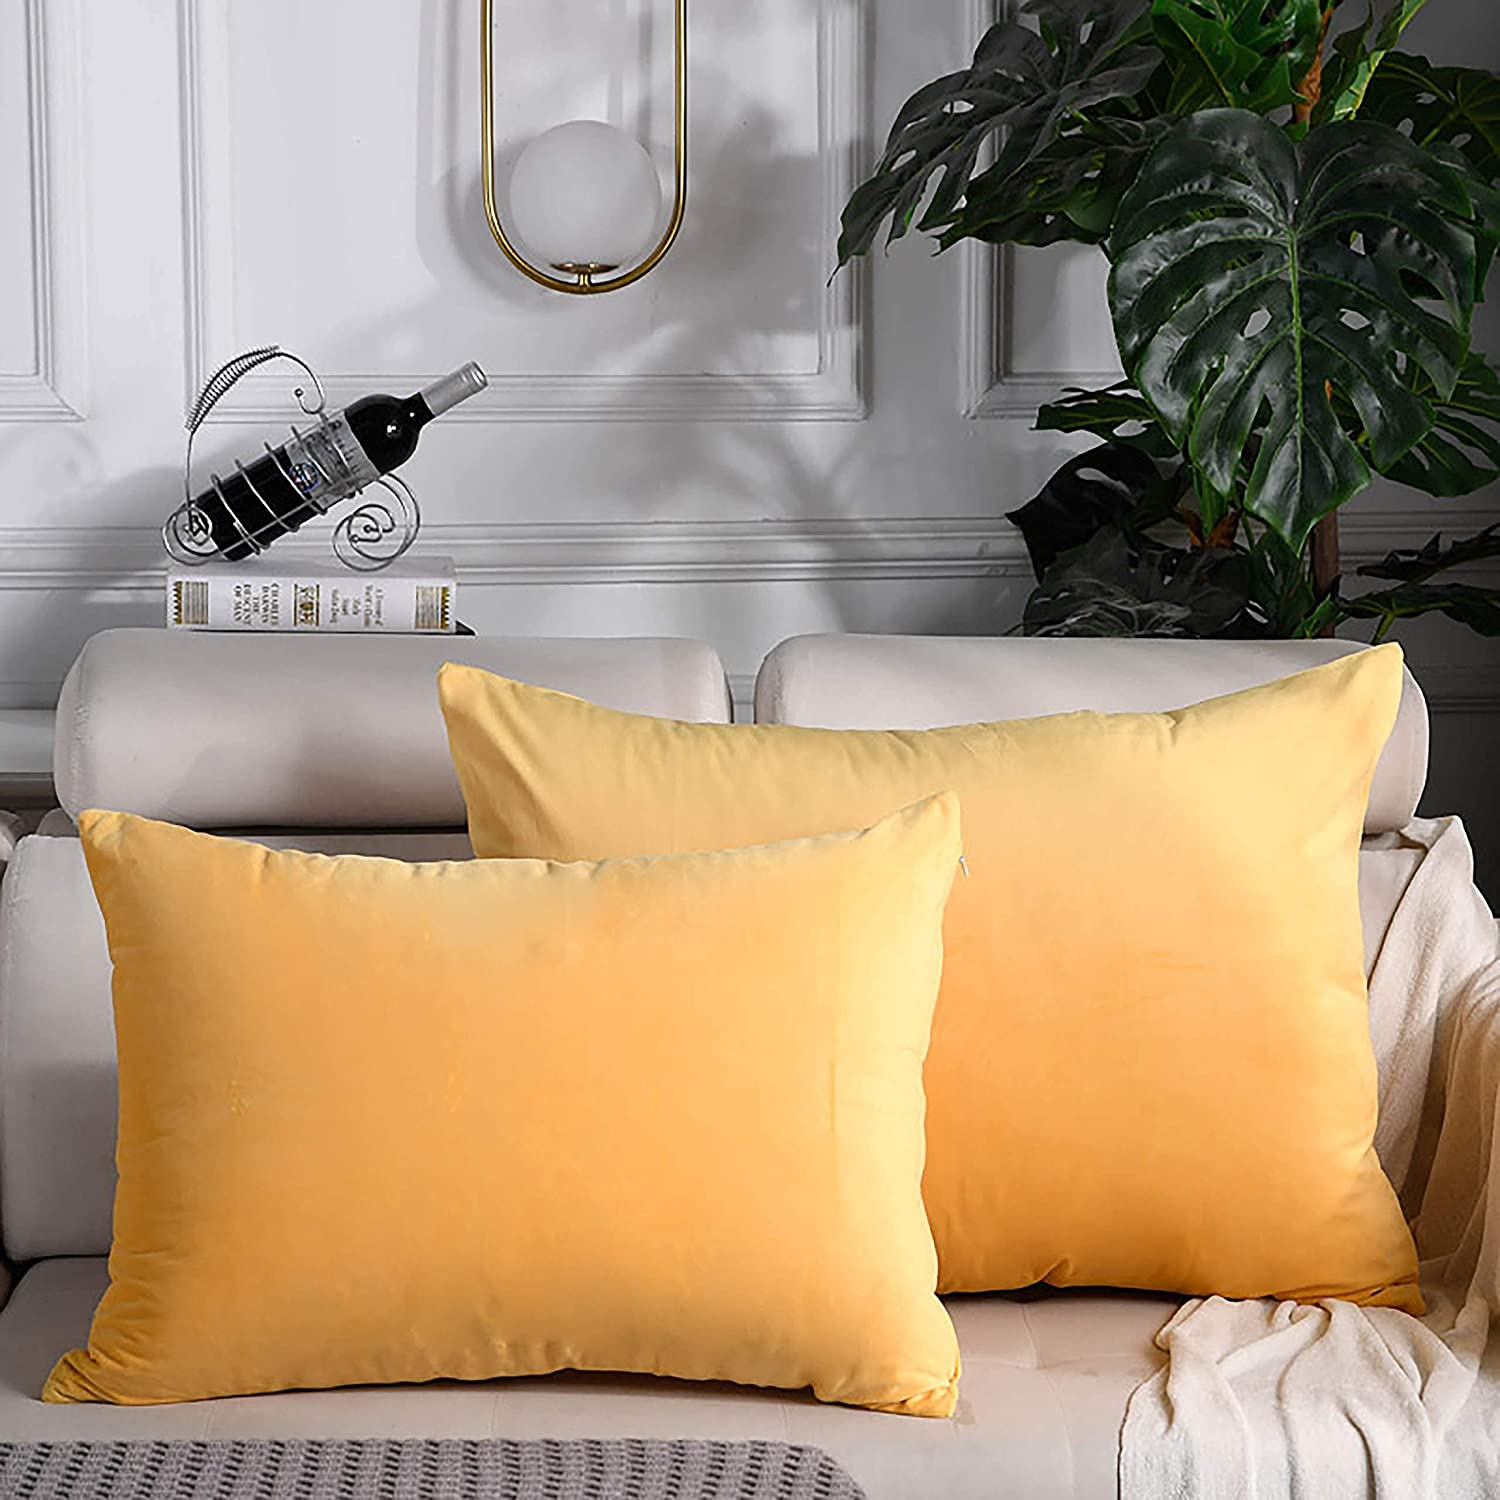 goodshop1988 Velvet Lumbar Pillow Covers 12x20 Inch Soft Throw Pillow Covers Solid Color Pillow Case Home Decor for Couch,Bed,Sofa,Bedroom,2 Pack,Camel